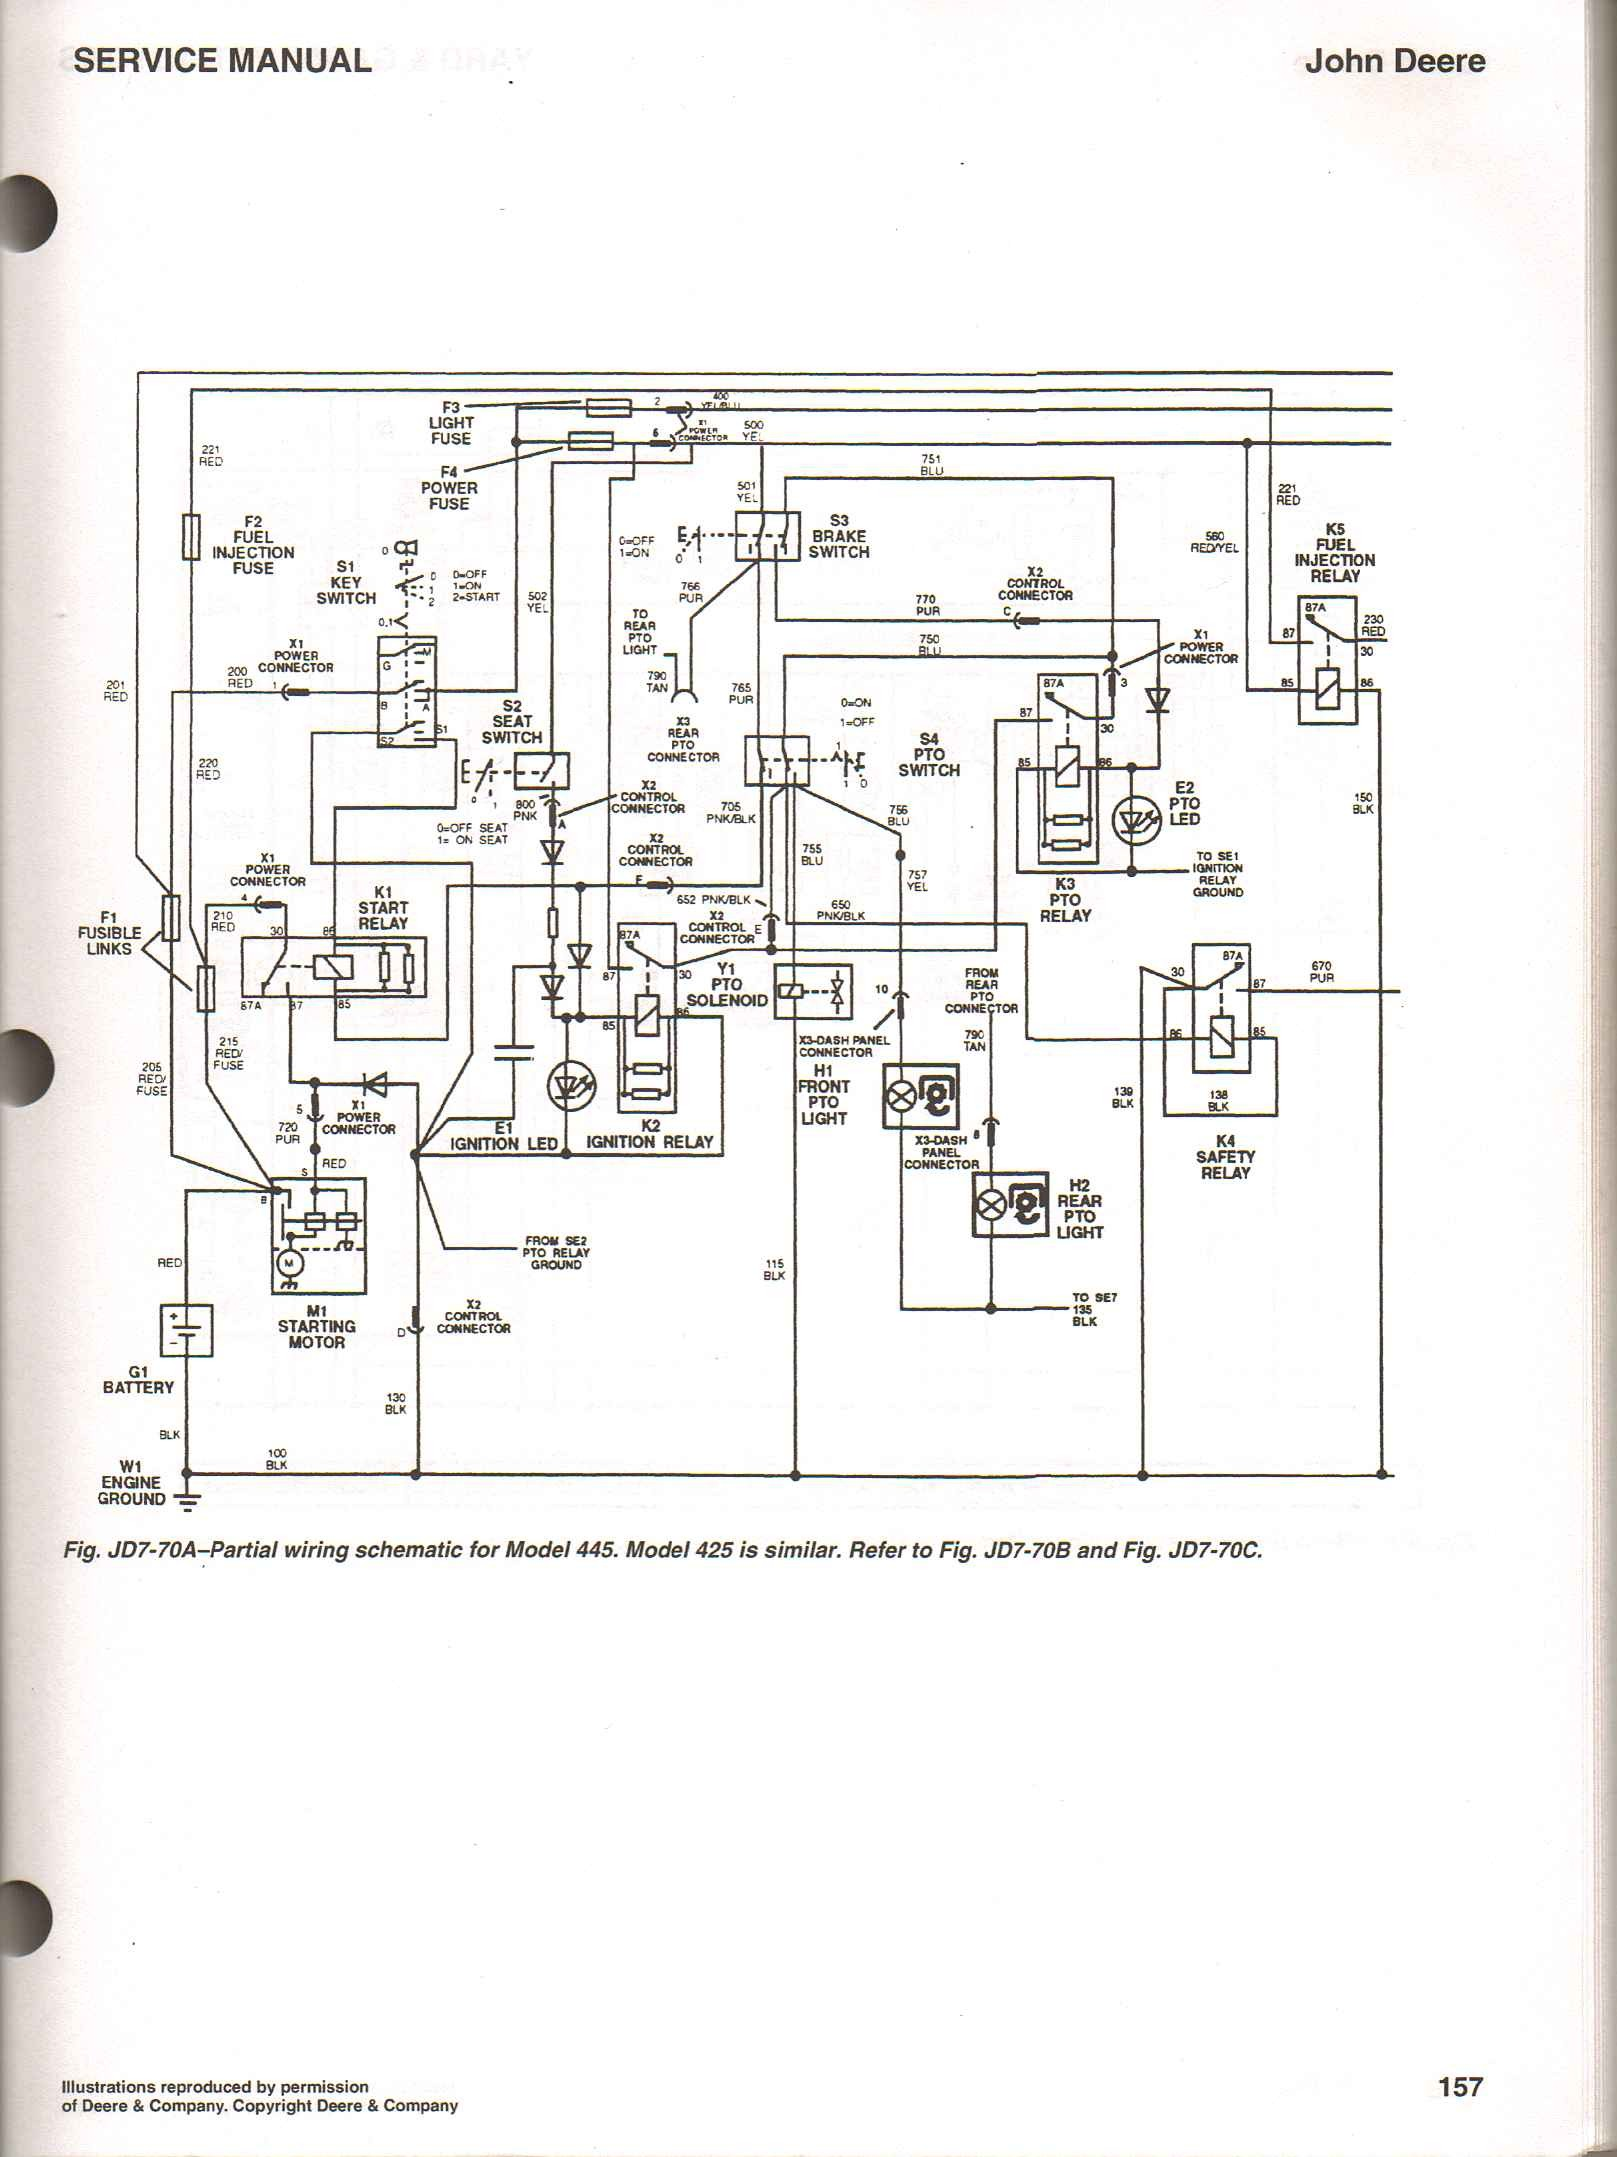 Electrical Scheme for A John Deere Gx345 Re Deere 345 Lawn and Garden Tractor Pto Will Not Engage Of Electrical Scheme for A John Deere Gx345